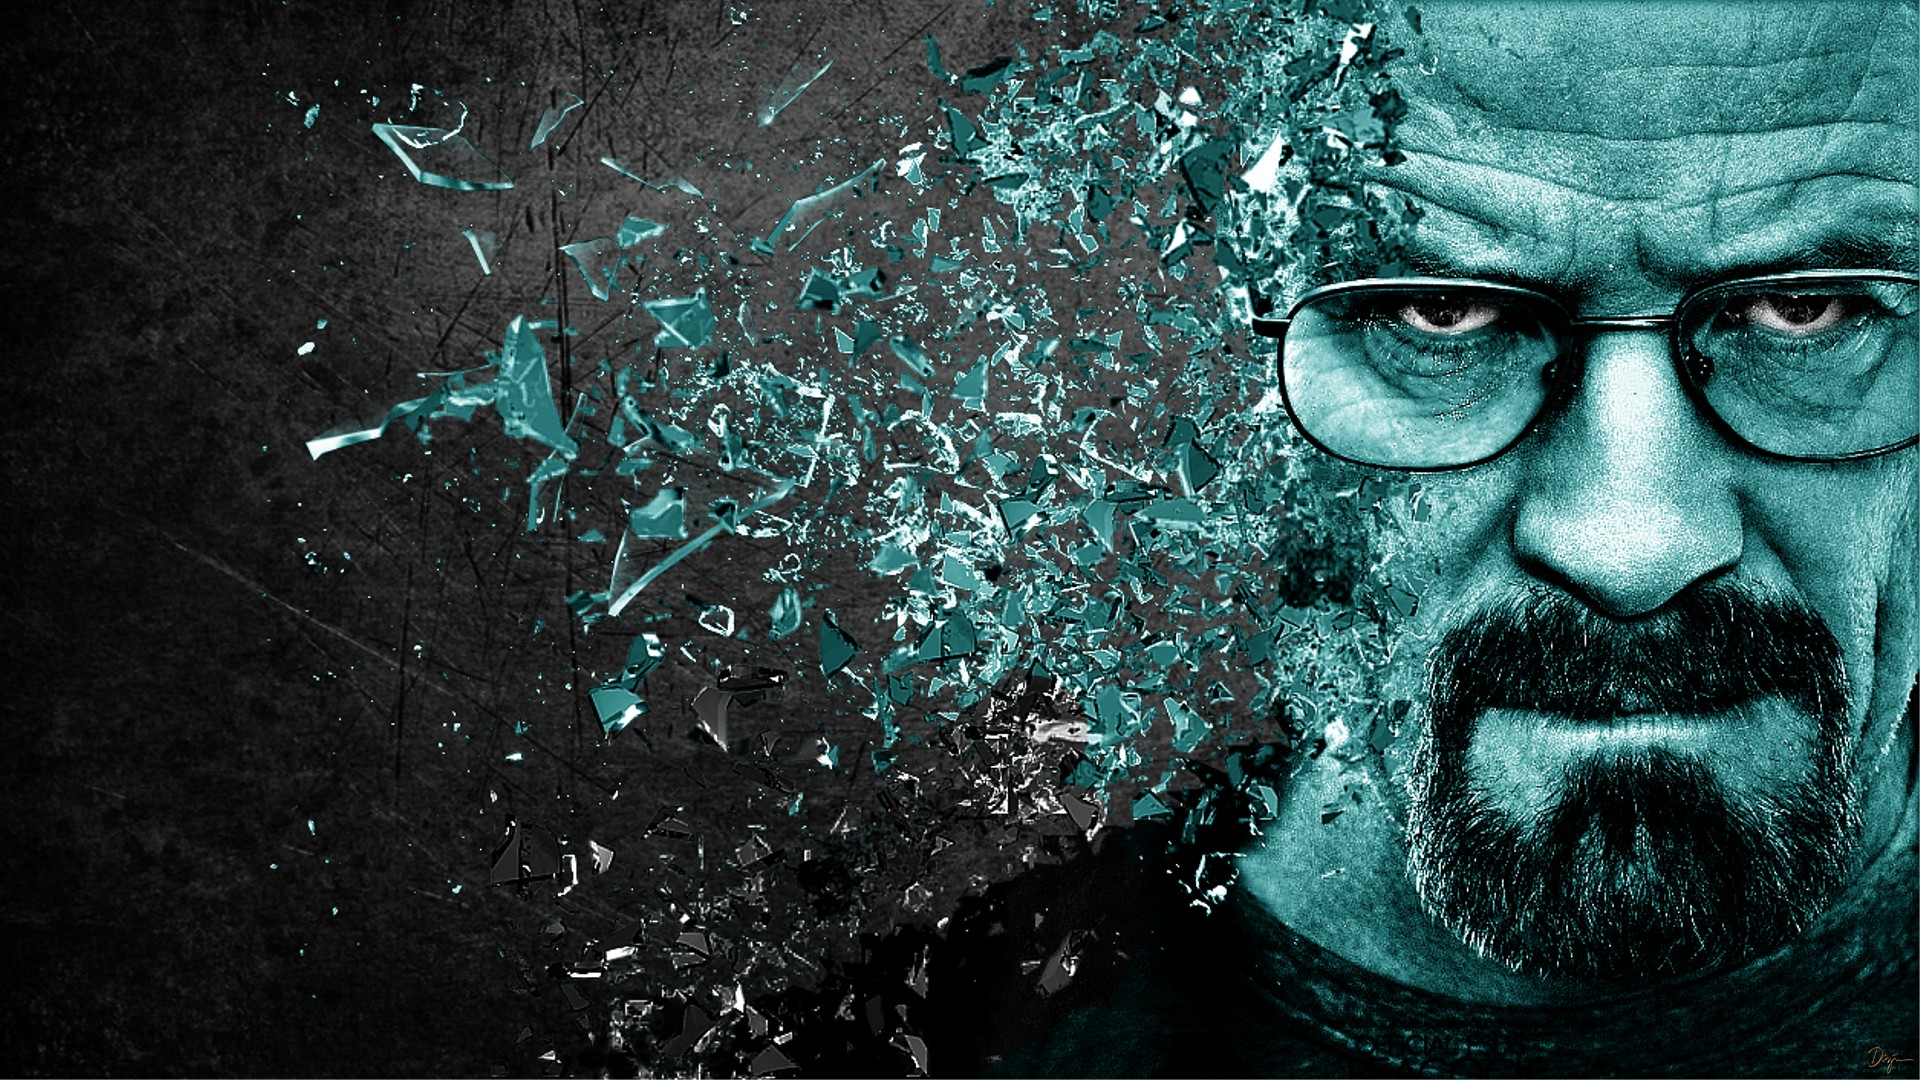 Shattered Walter White Selective Coloring Breaking Bad